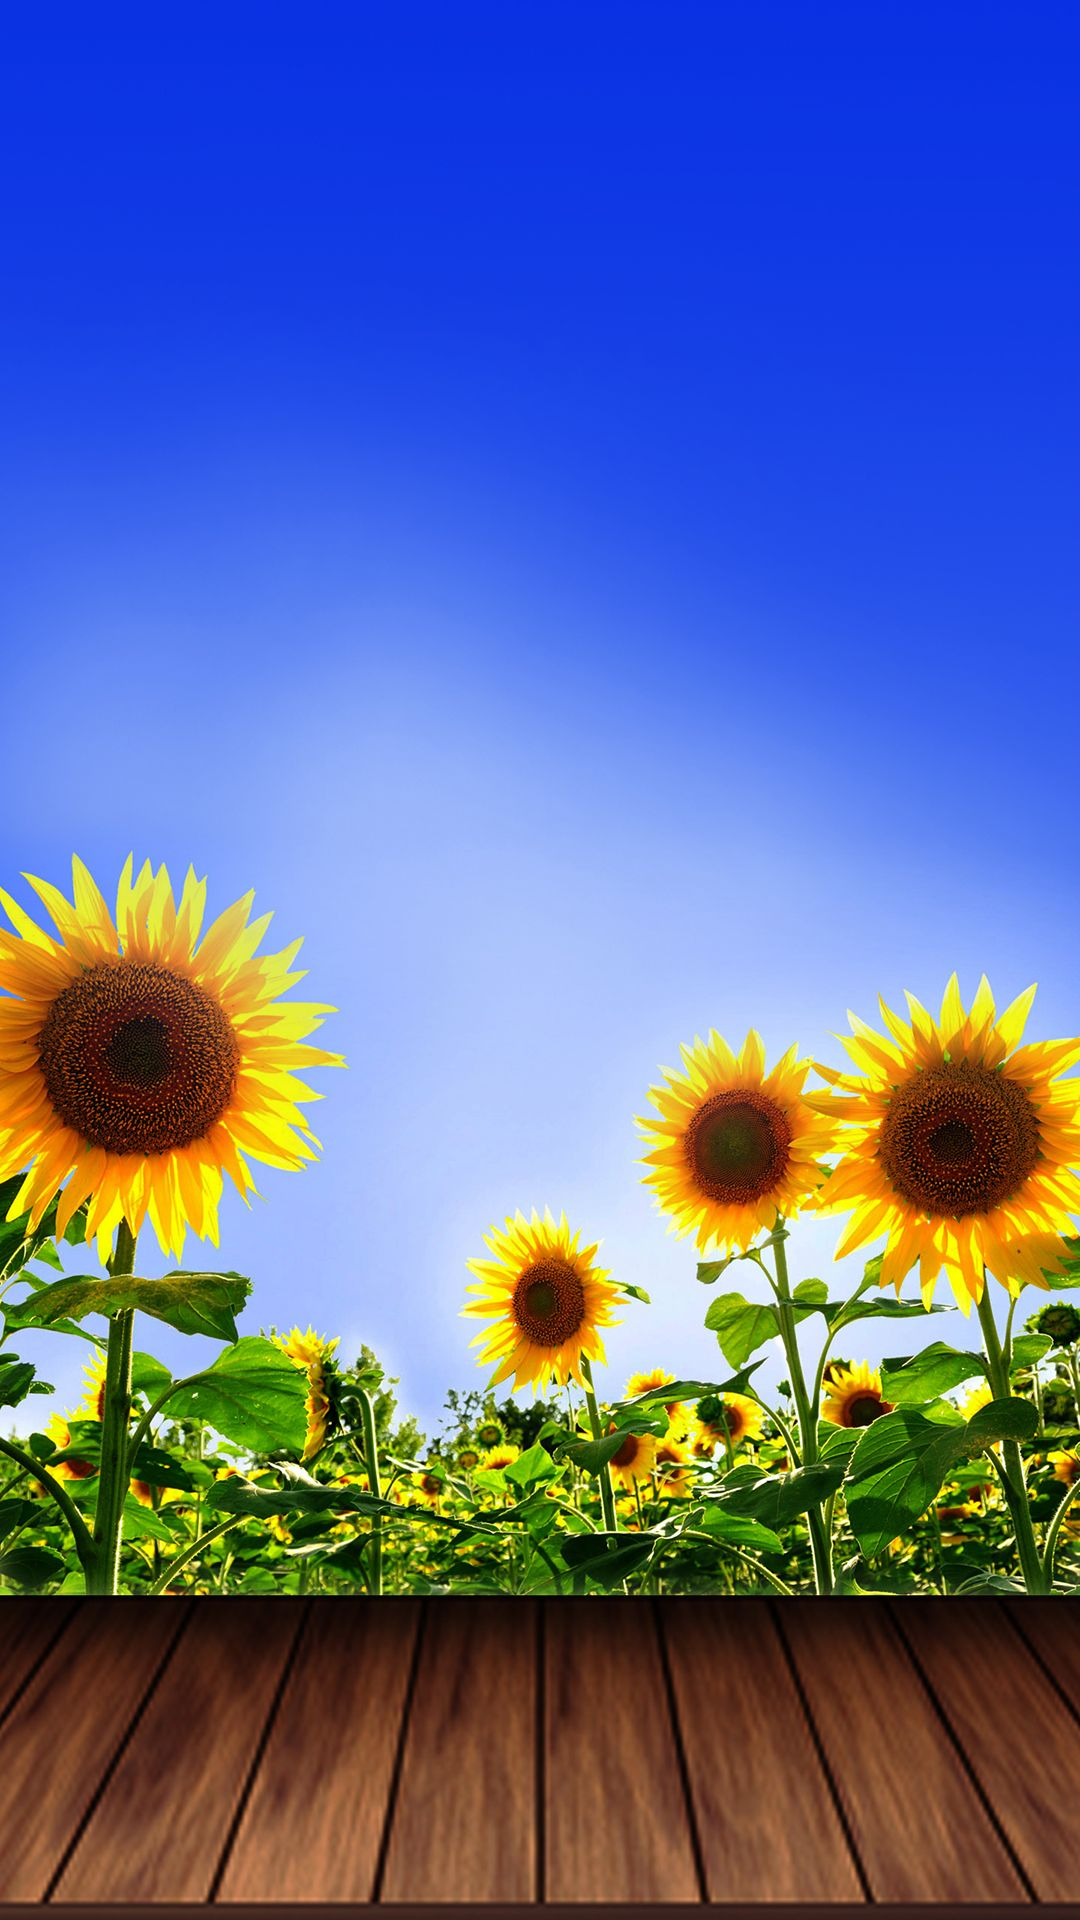 Sunflowers iPhone Wallpapers - Top Free Sunflowers iPhone ...